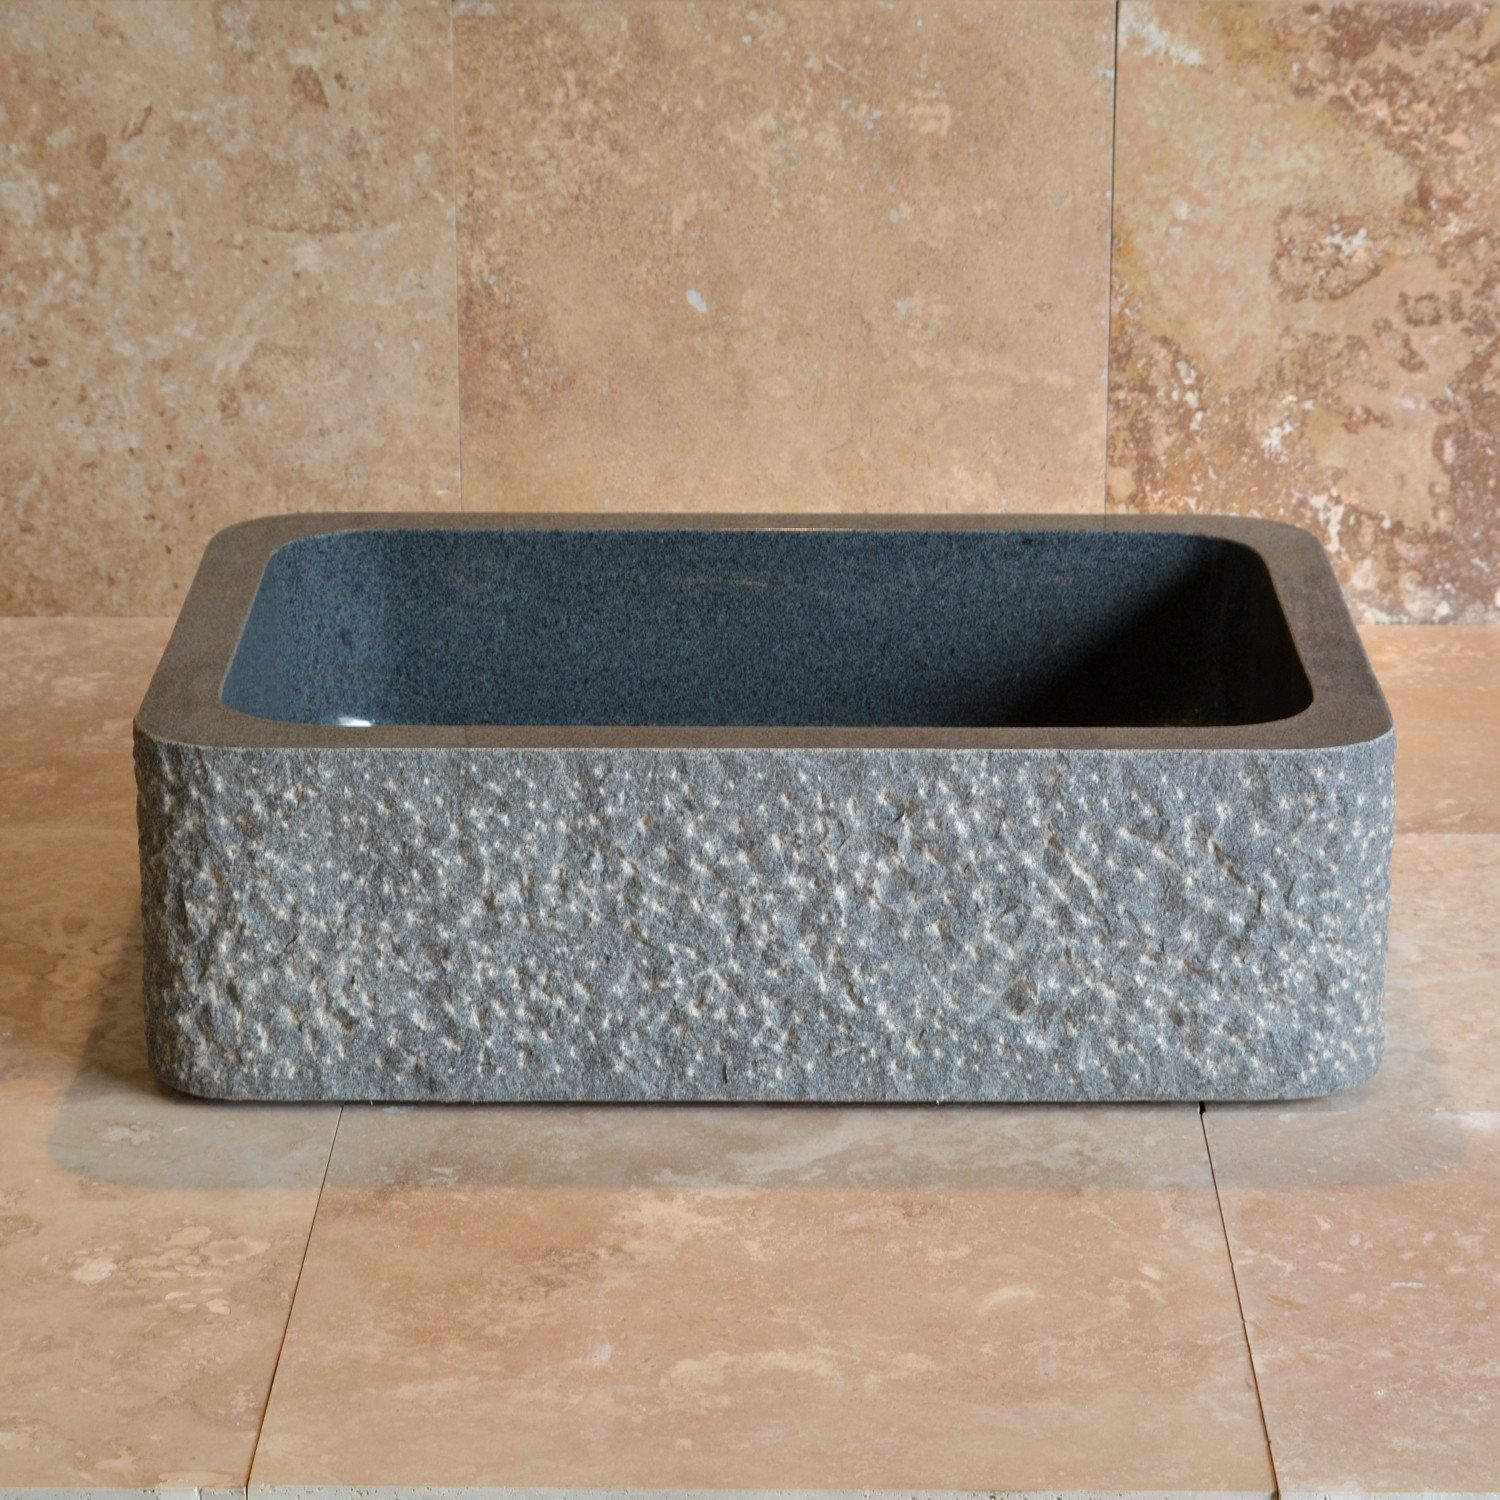 Farmhouse Sink With Chiseled Apron 8 Inch Depth Stone Forest